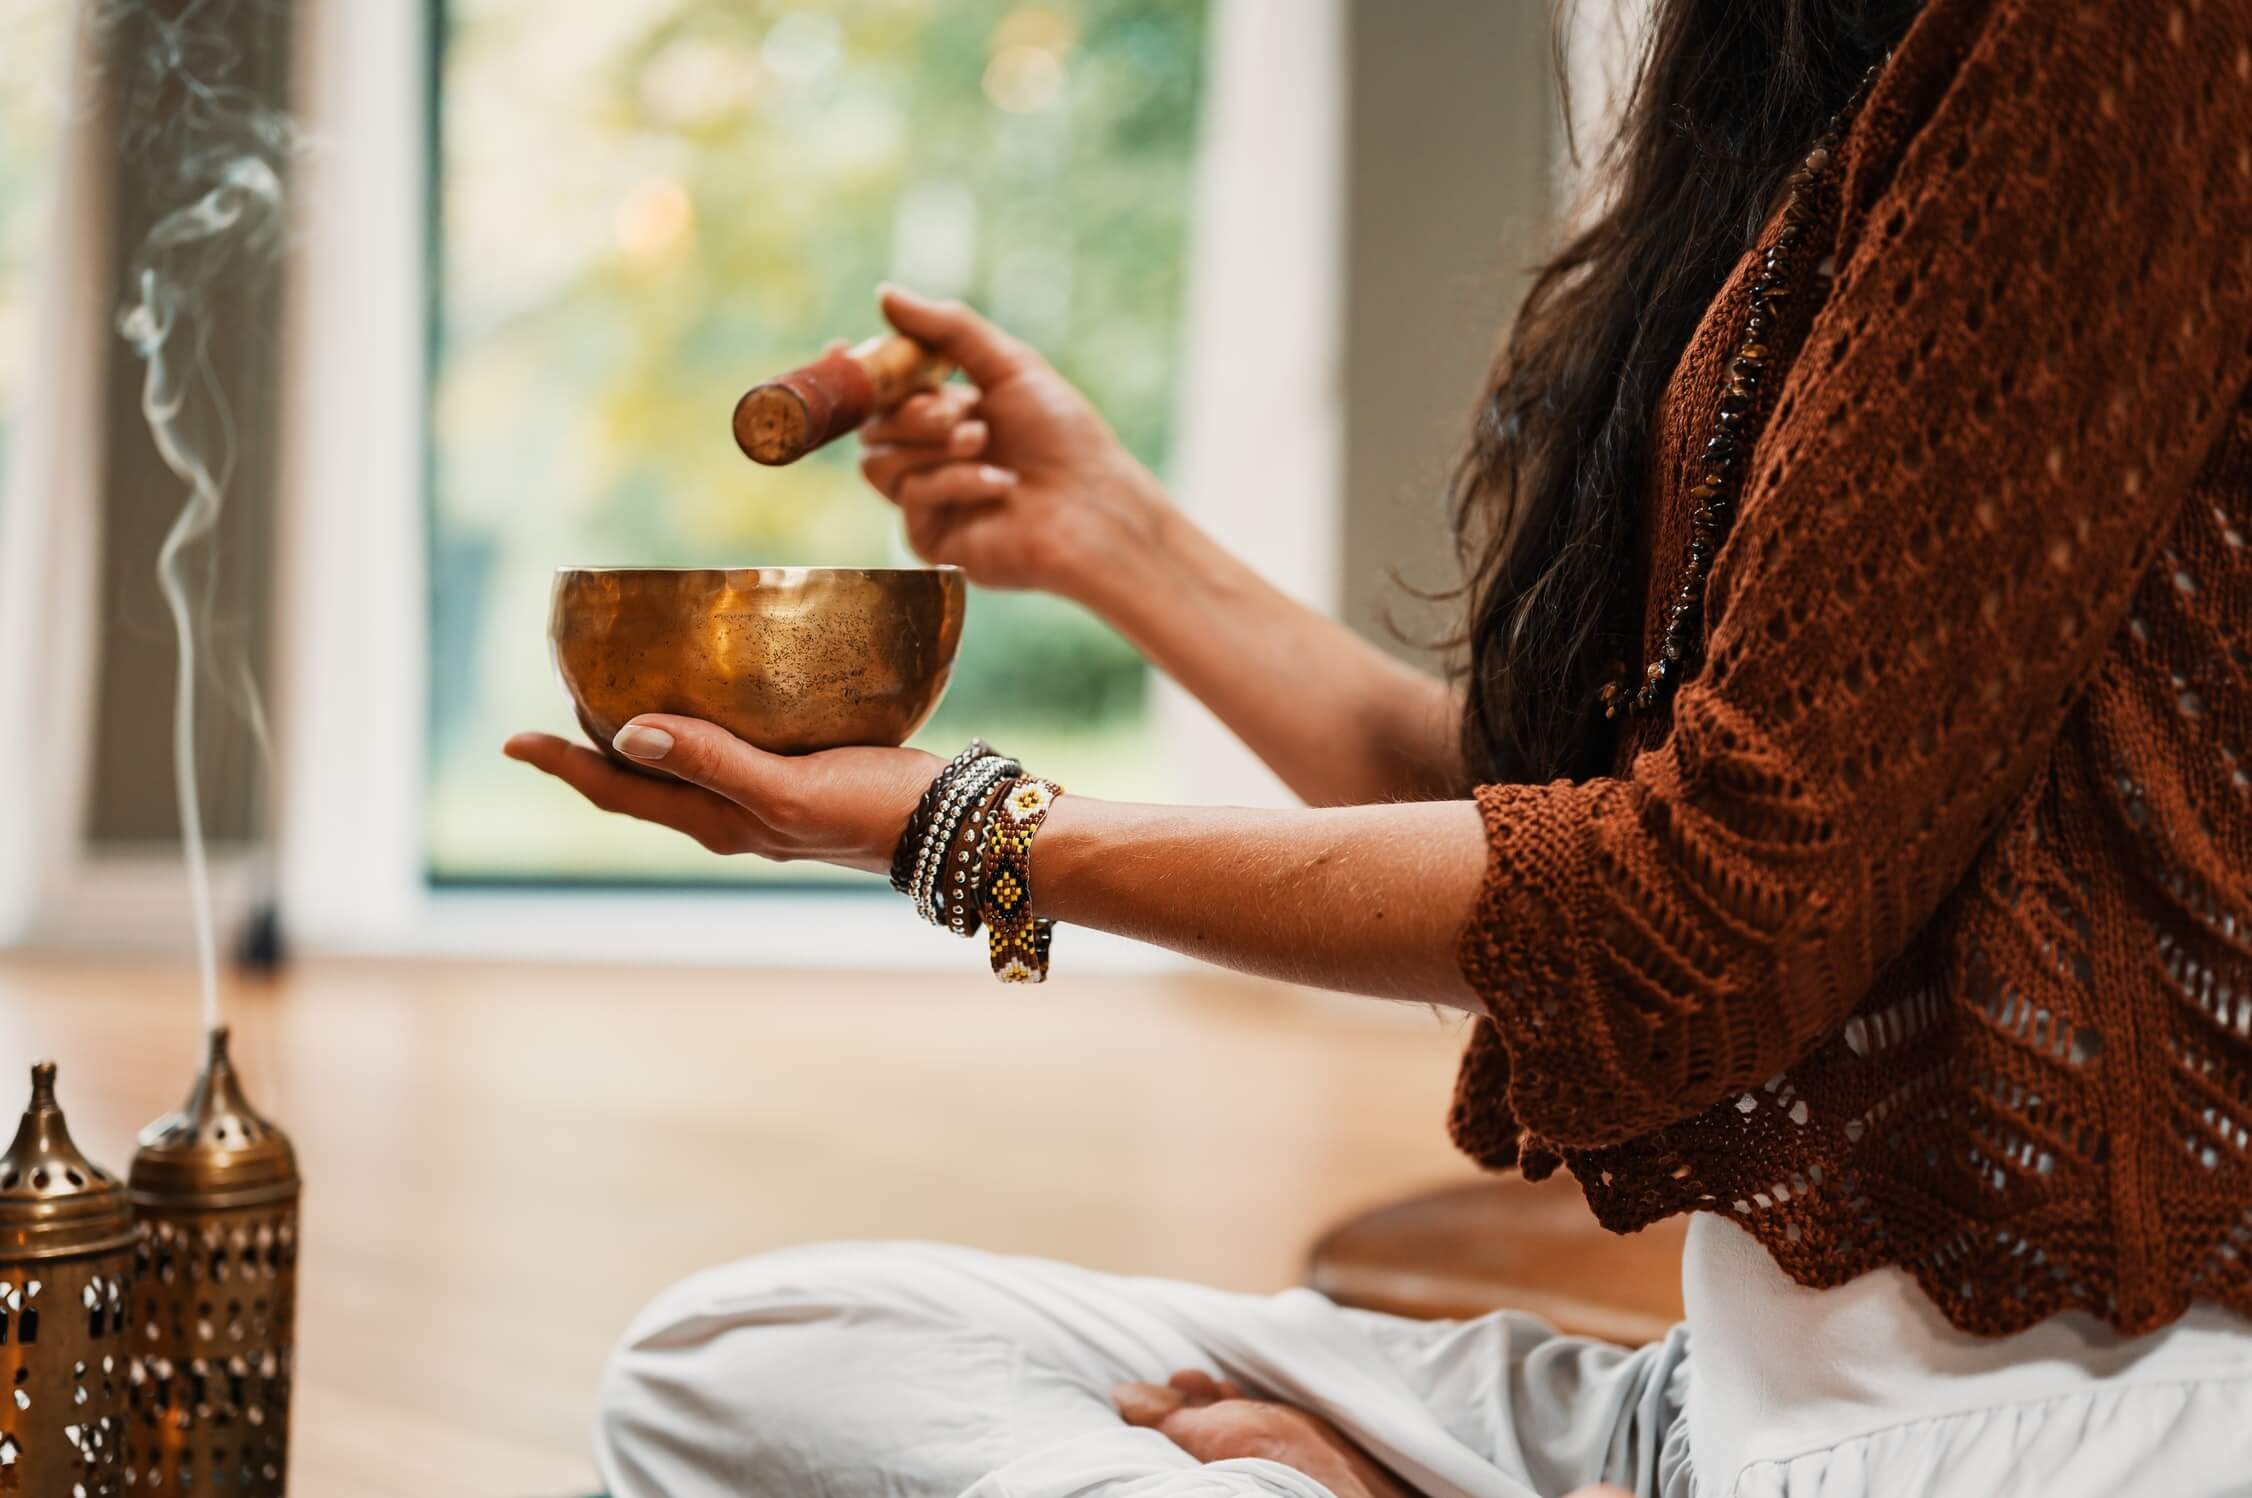 woman in brown outfit sitting in lotus position holding small singing ball and wooden mallet